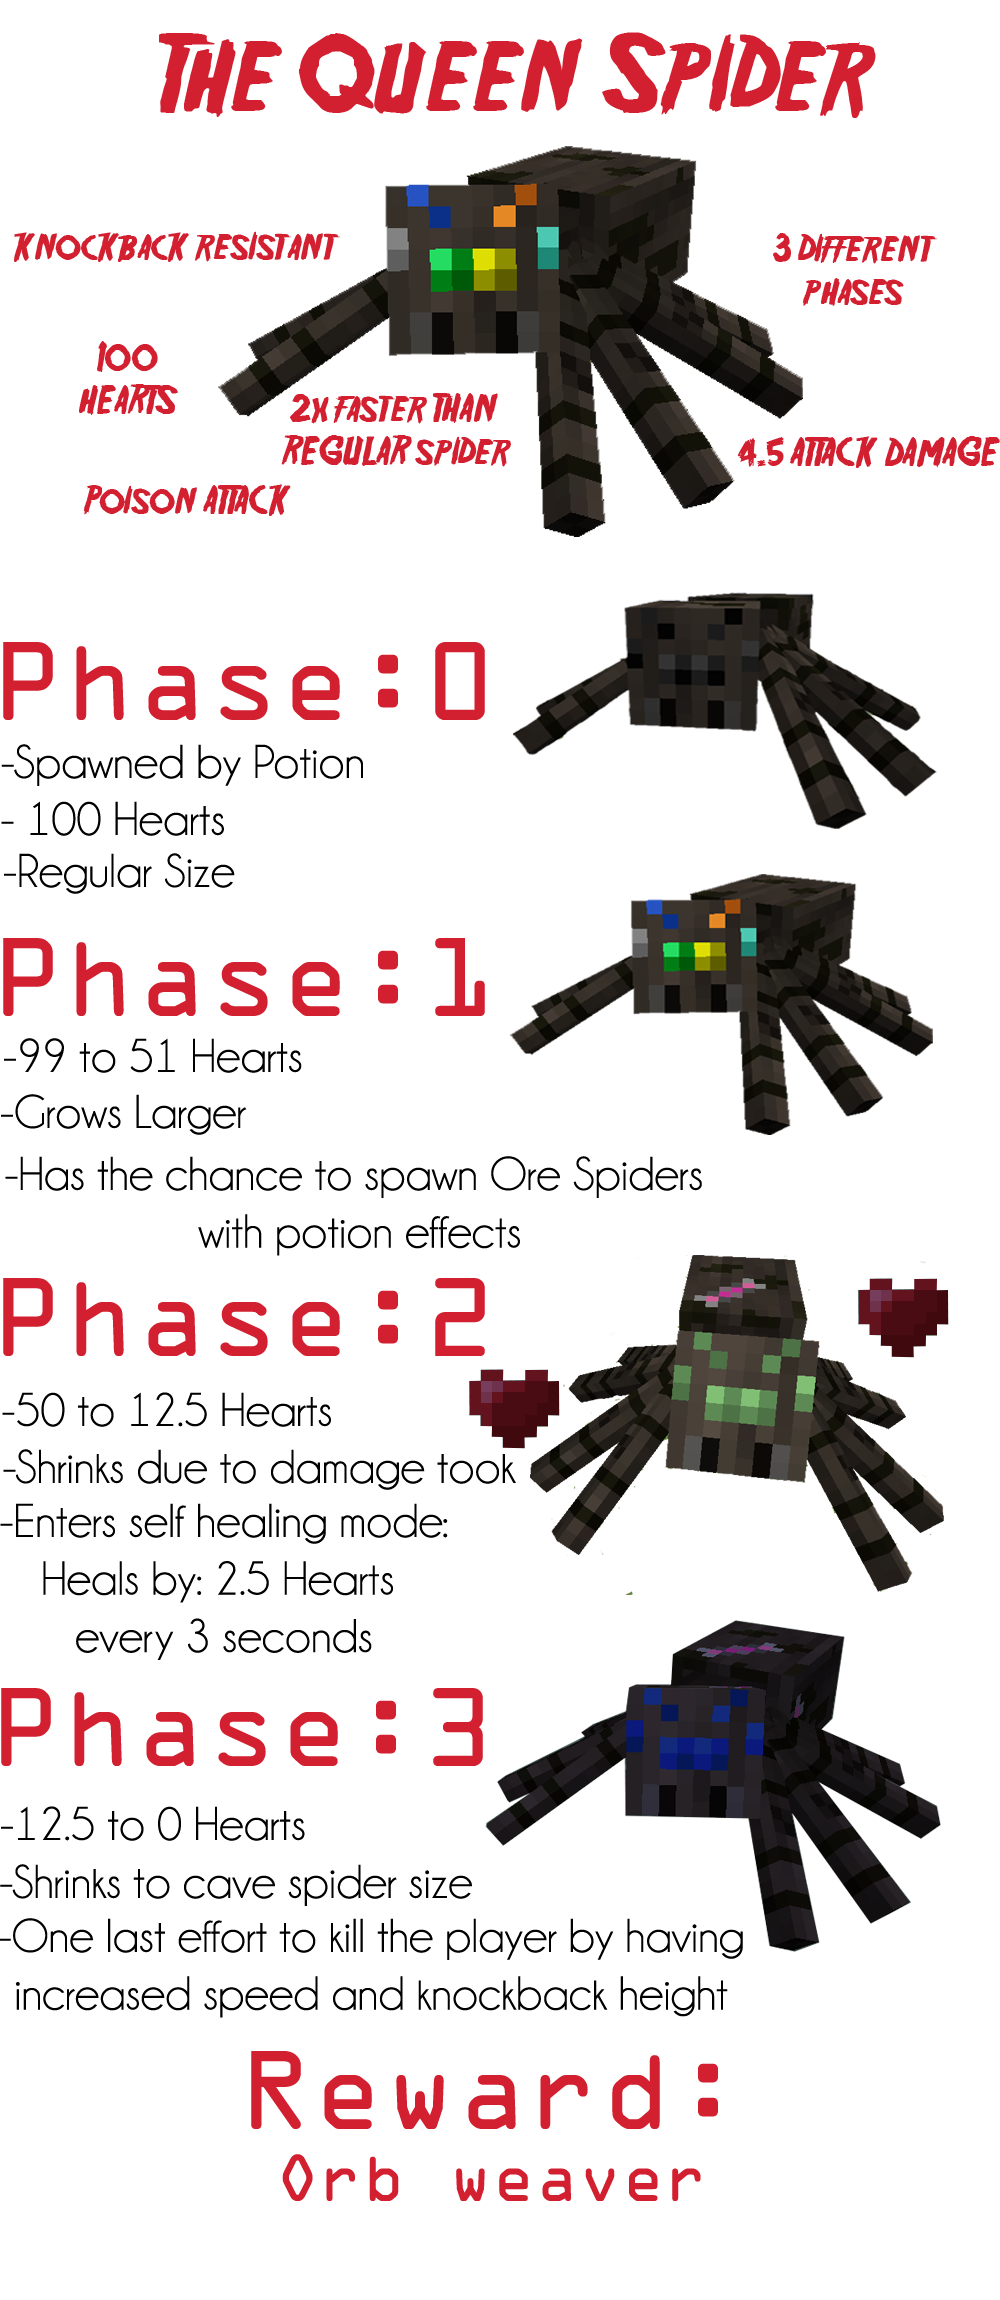 Ore-Spiders-Mod-13.png